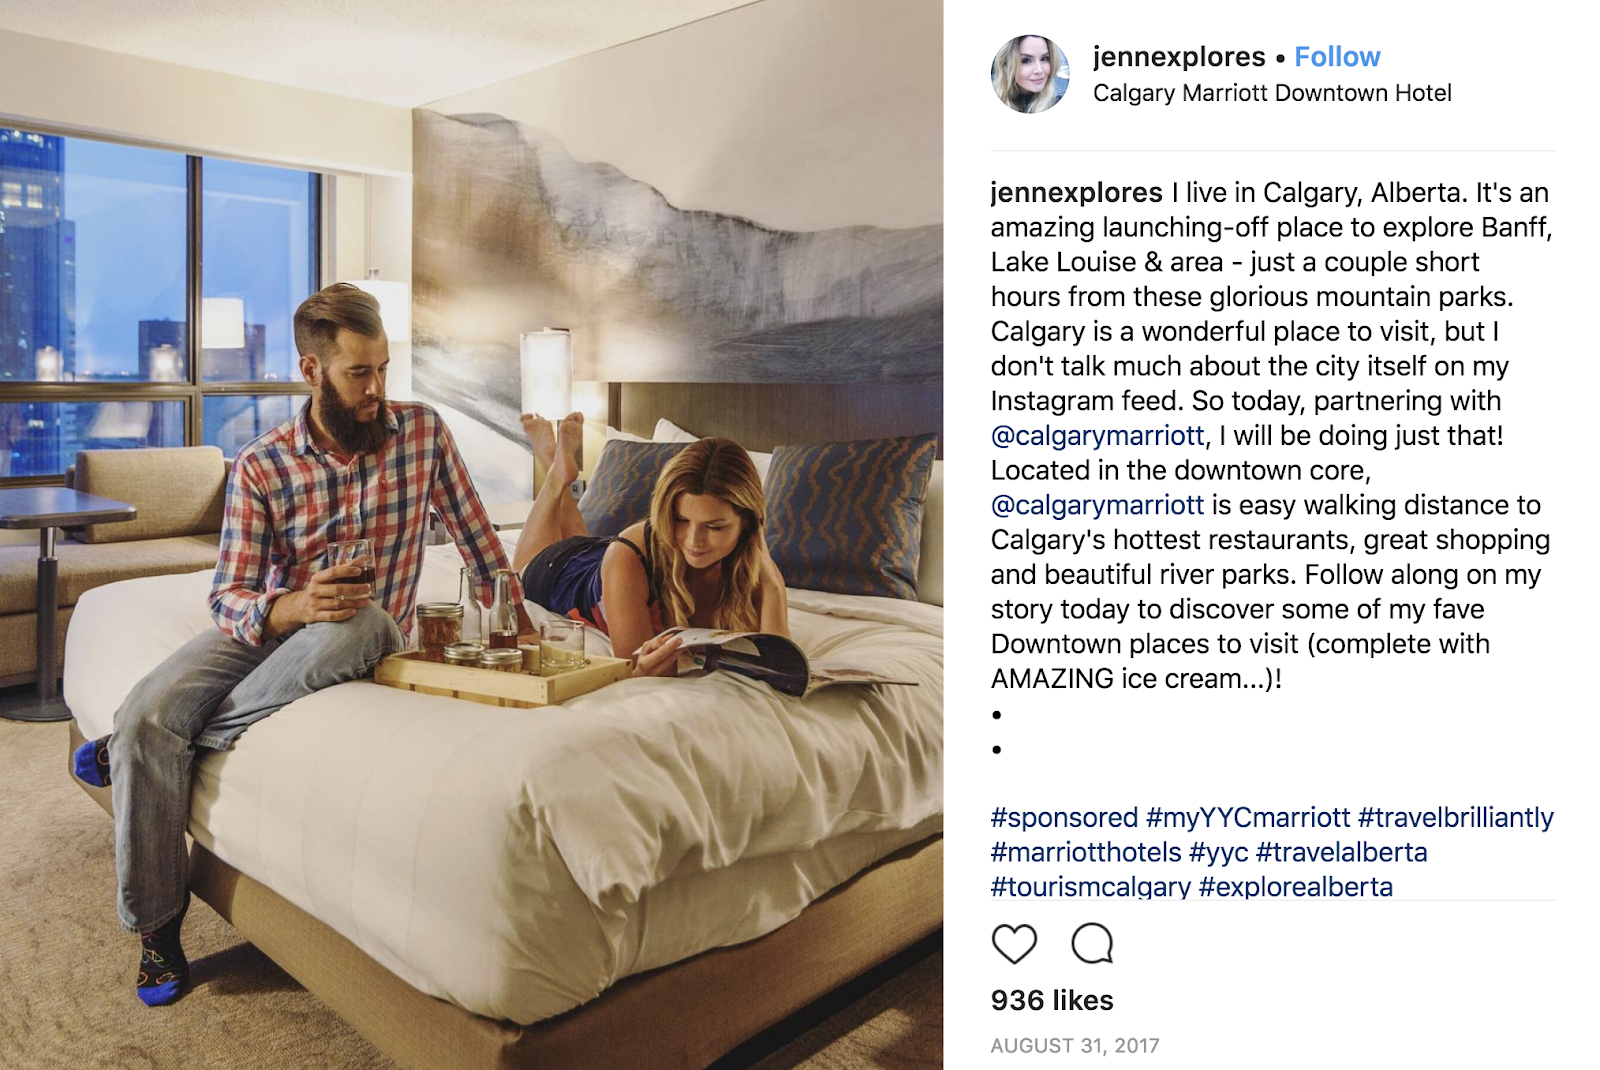 influencer collaboration influencer marketing hotel marketing